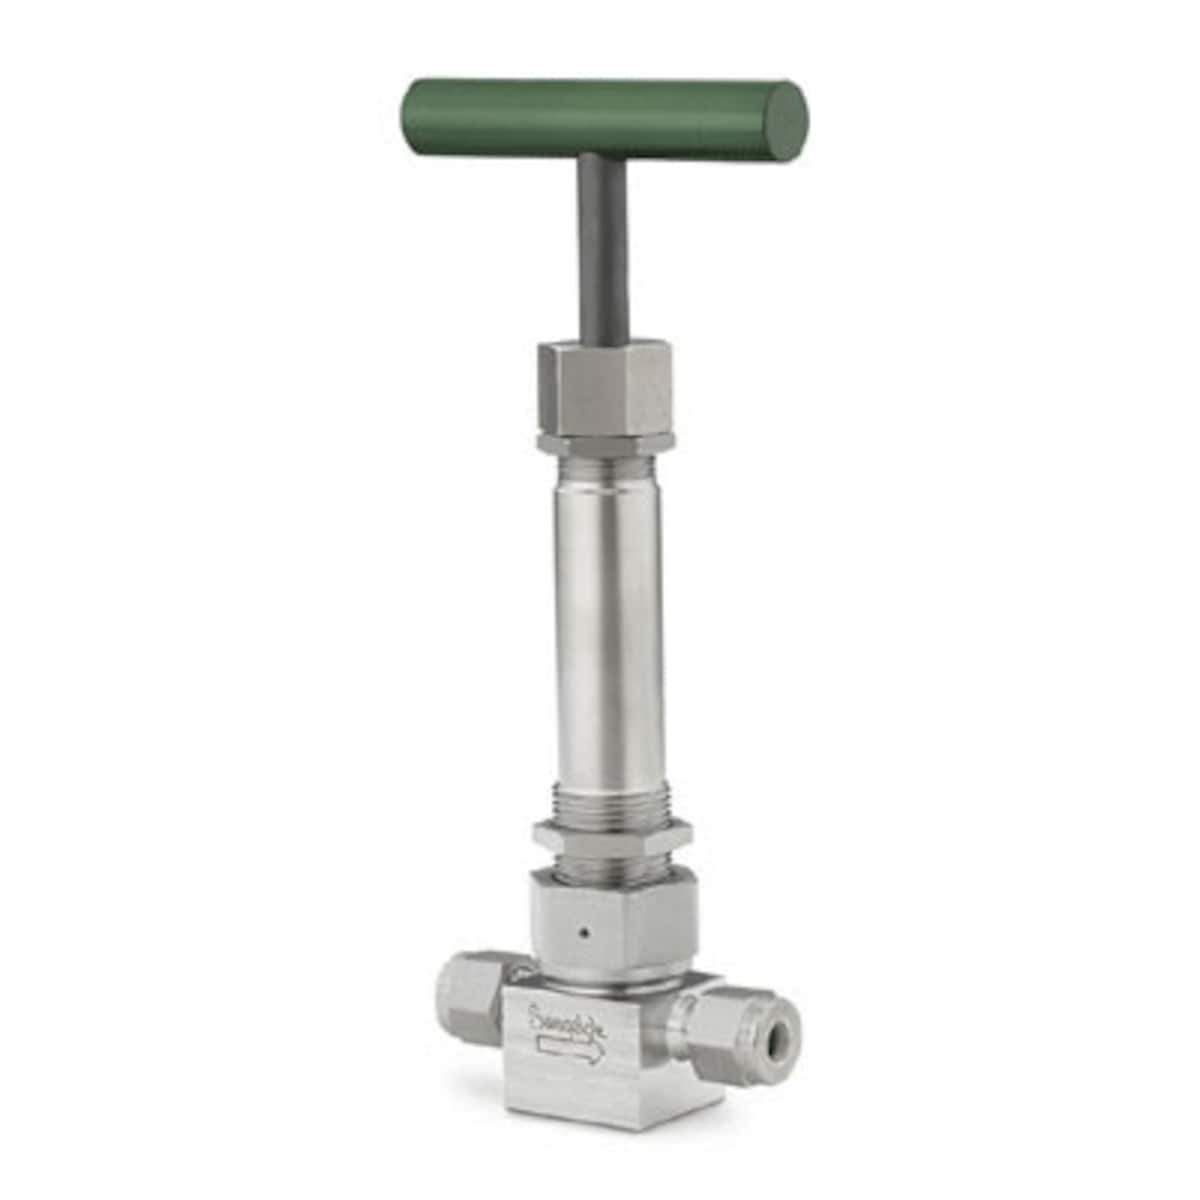 High-Temp Bellows Valves with Secondary Packing, U Series